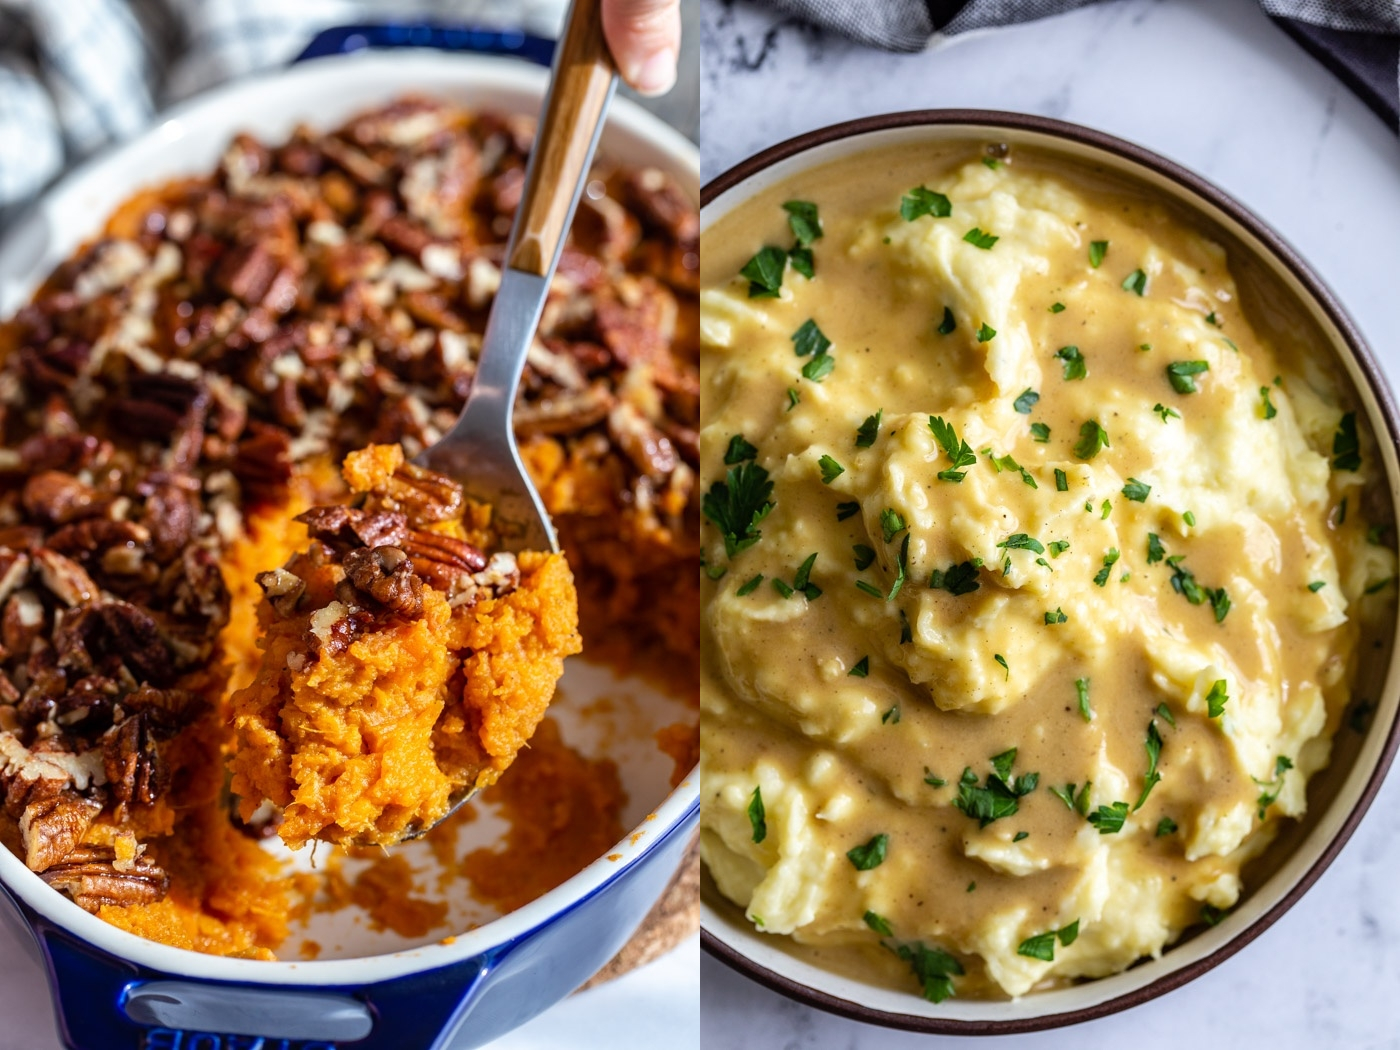 side by side images. left image is sweet potato casserole with a scoopfull being help up to the photo. right image: mashed potatoes covered in gravy